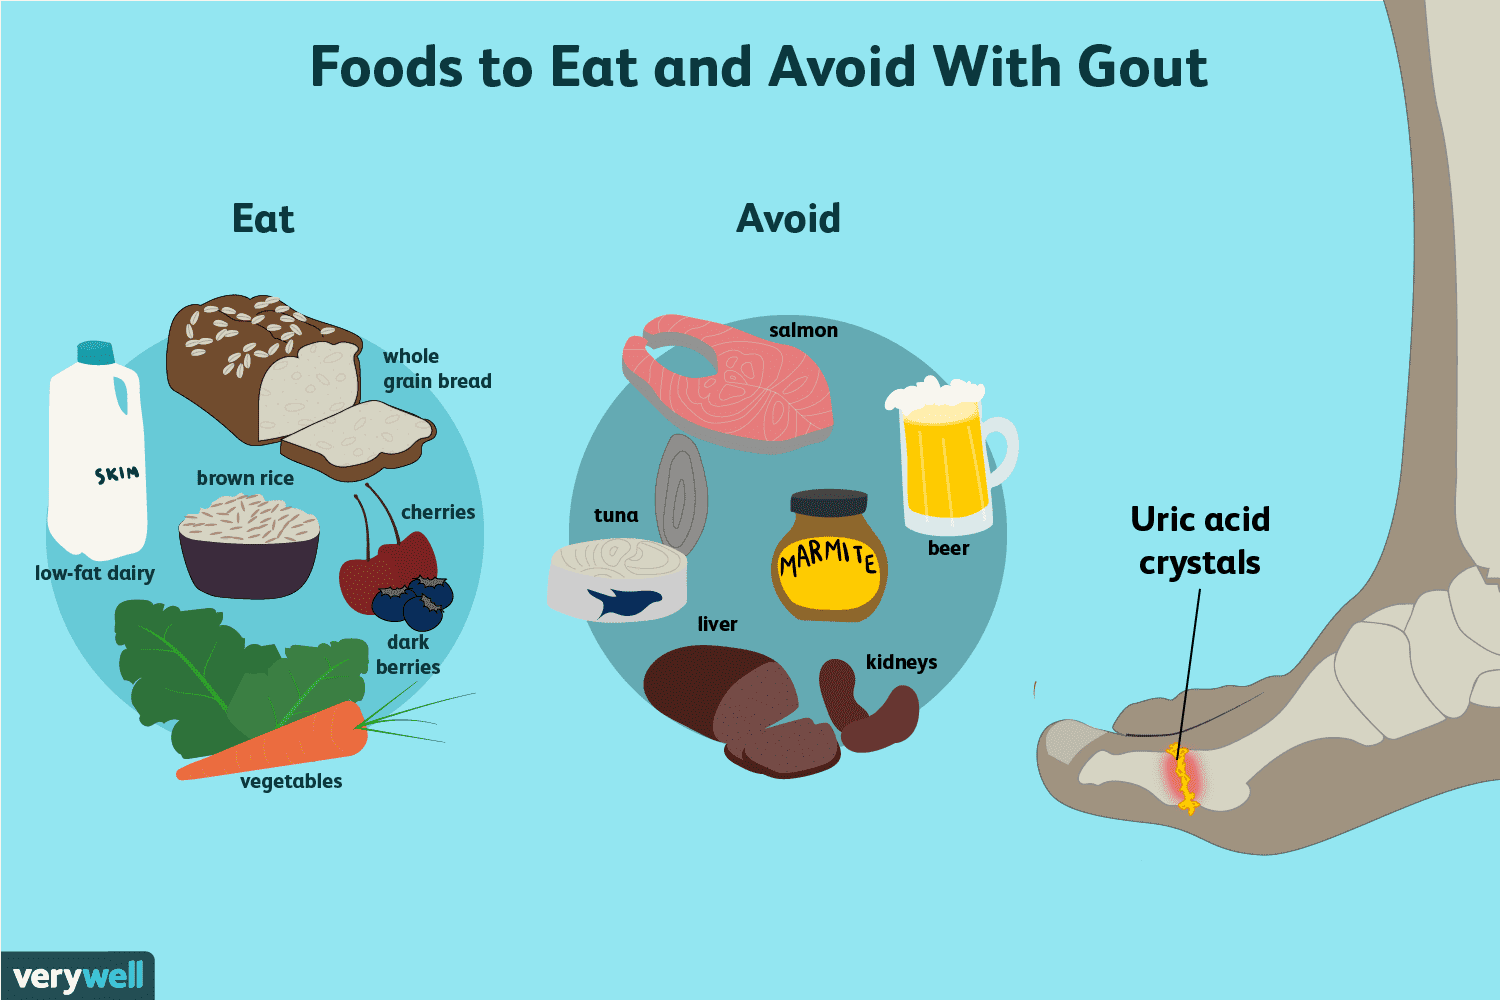 Learn What Foods to Eat to Reduce Gout Symptoms